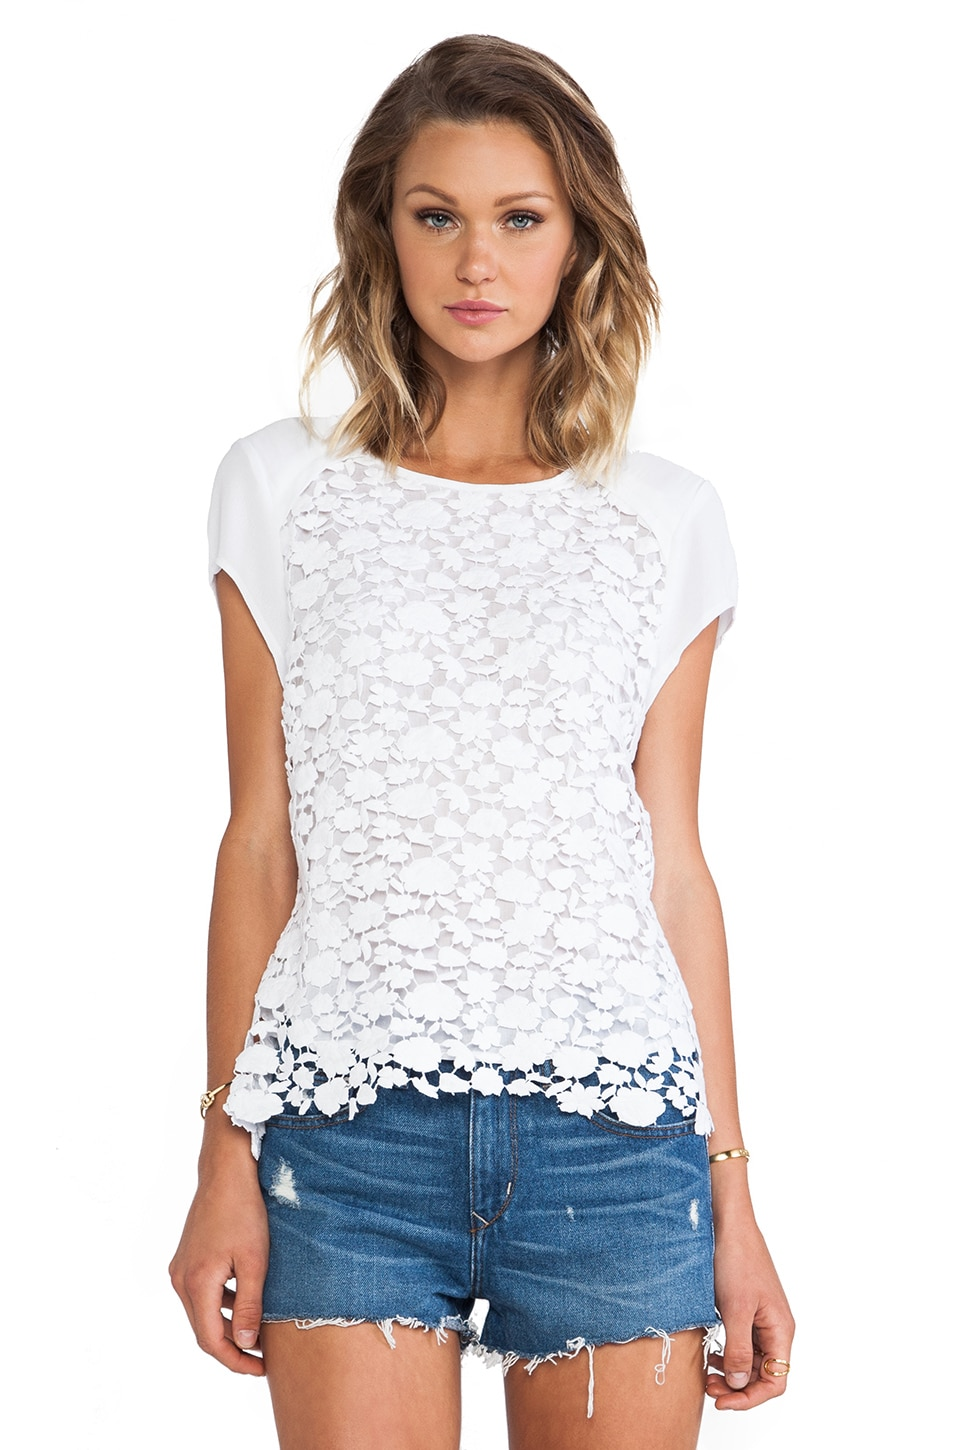 Wish Eternal Lace Top in White